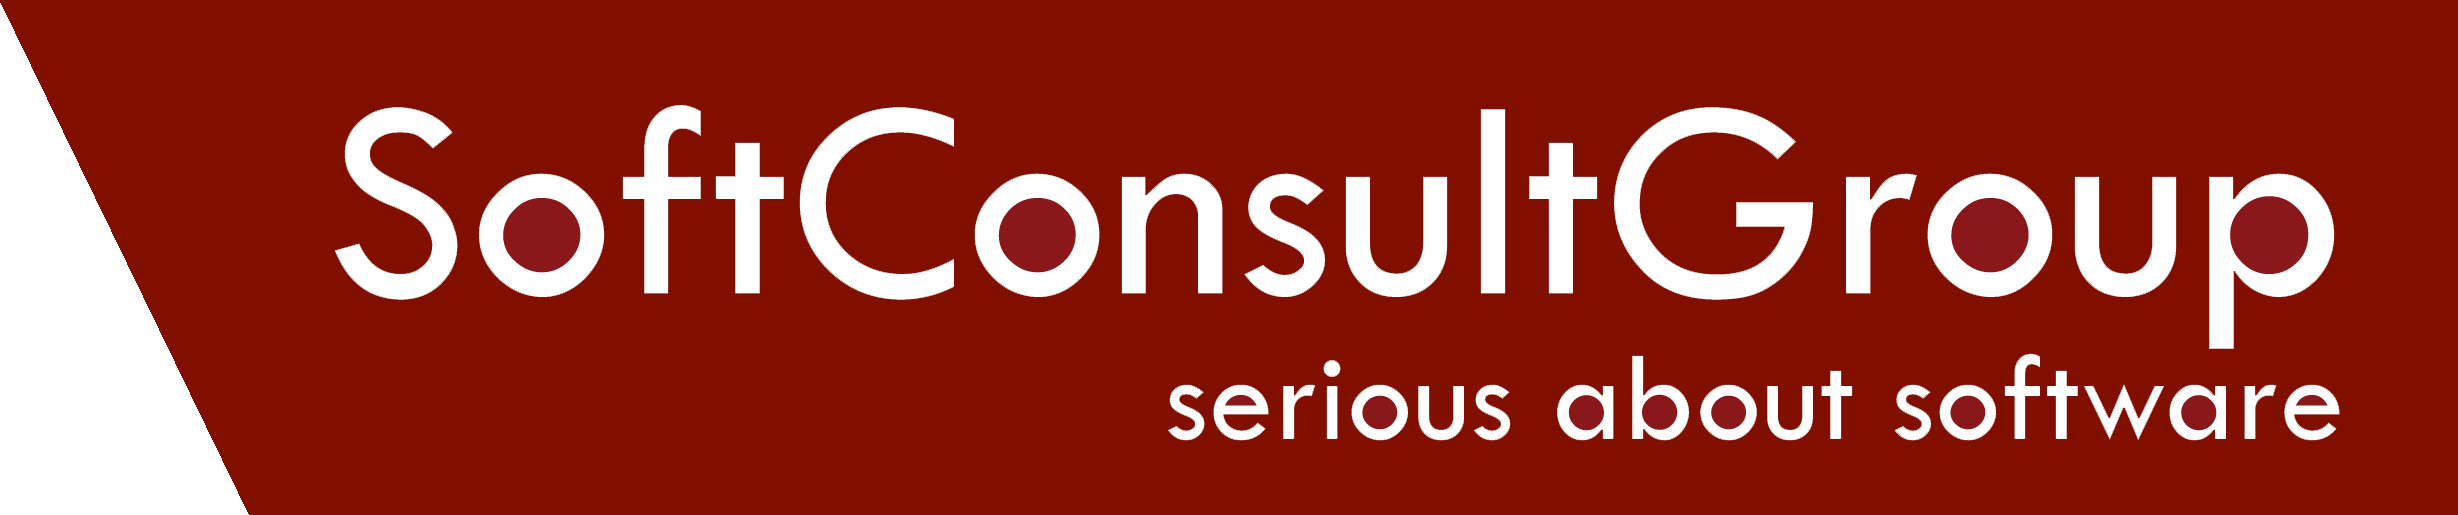 softconsultgroup_logo_sas